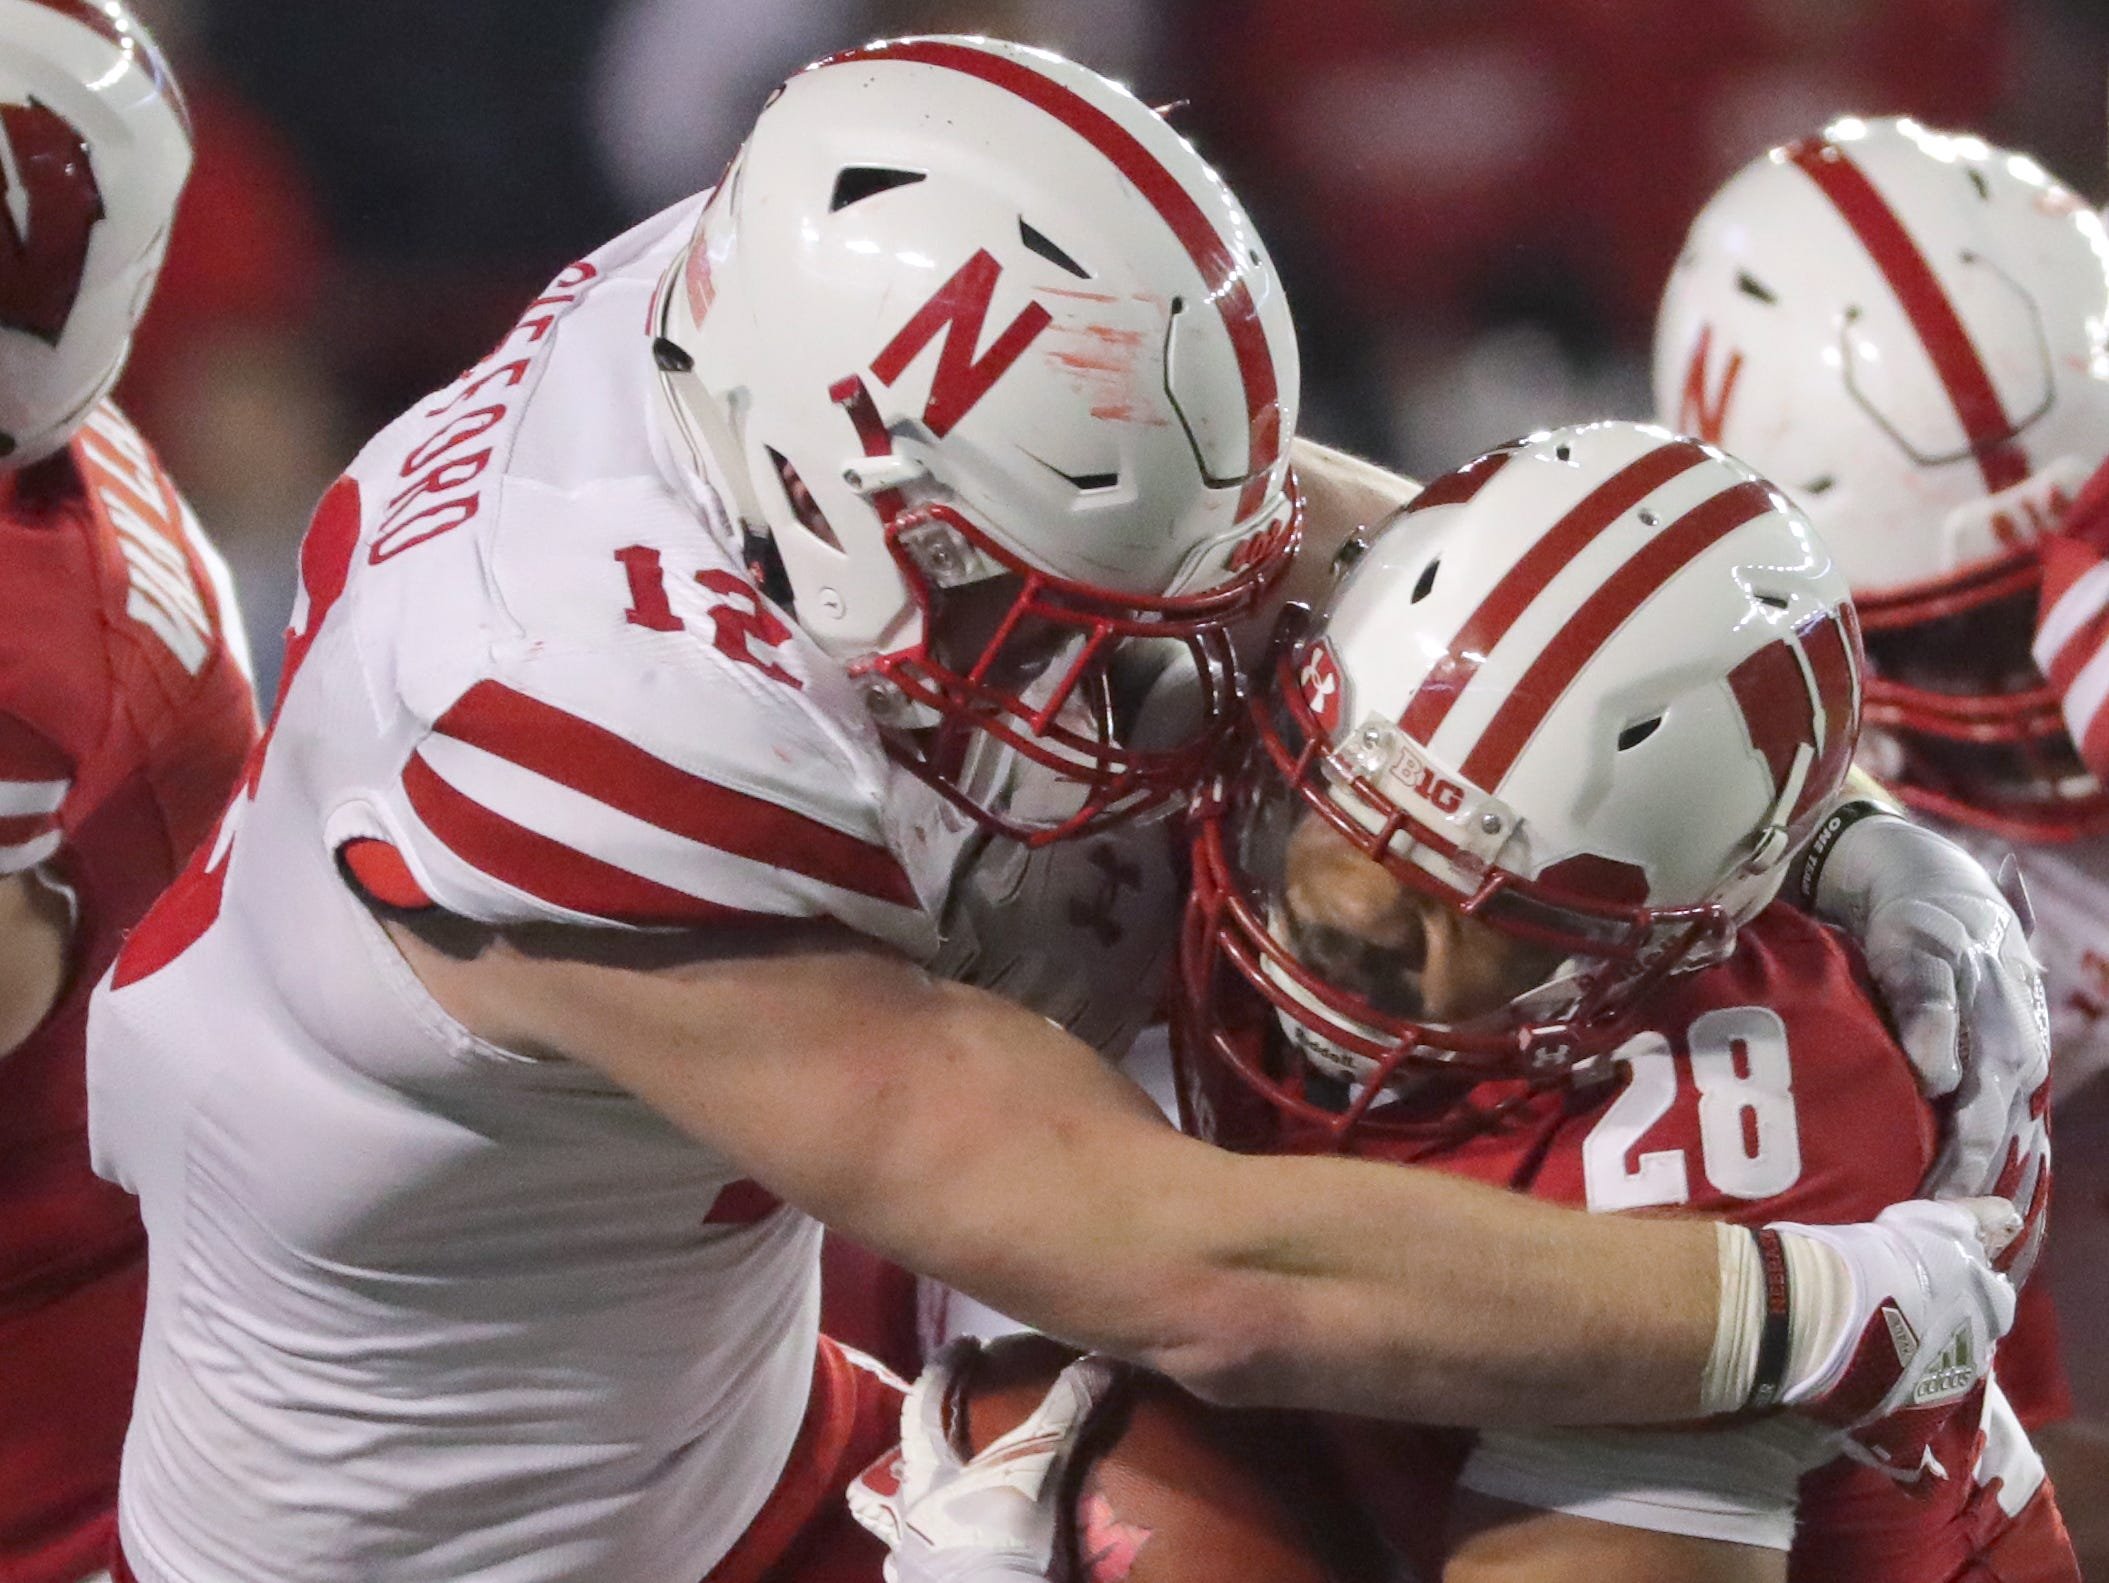 Nebraska linebacker Luke Gifford stuffs Wisconsin running back Taiwan Deal for a minimal gain during the fourth quarter on Saturday night.